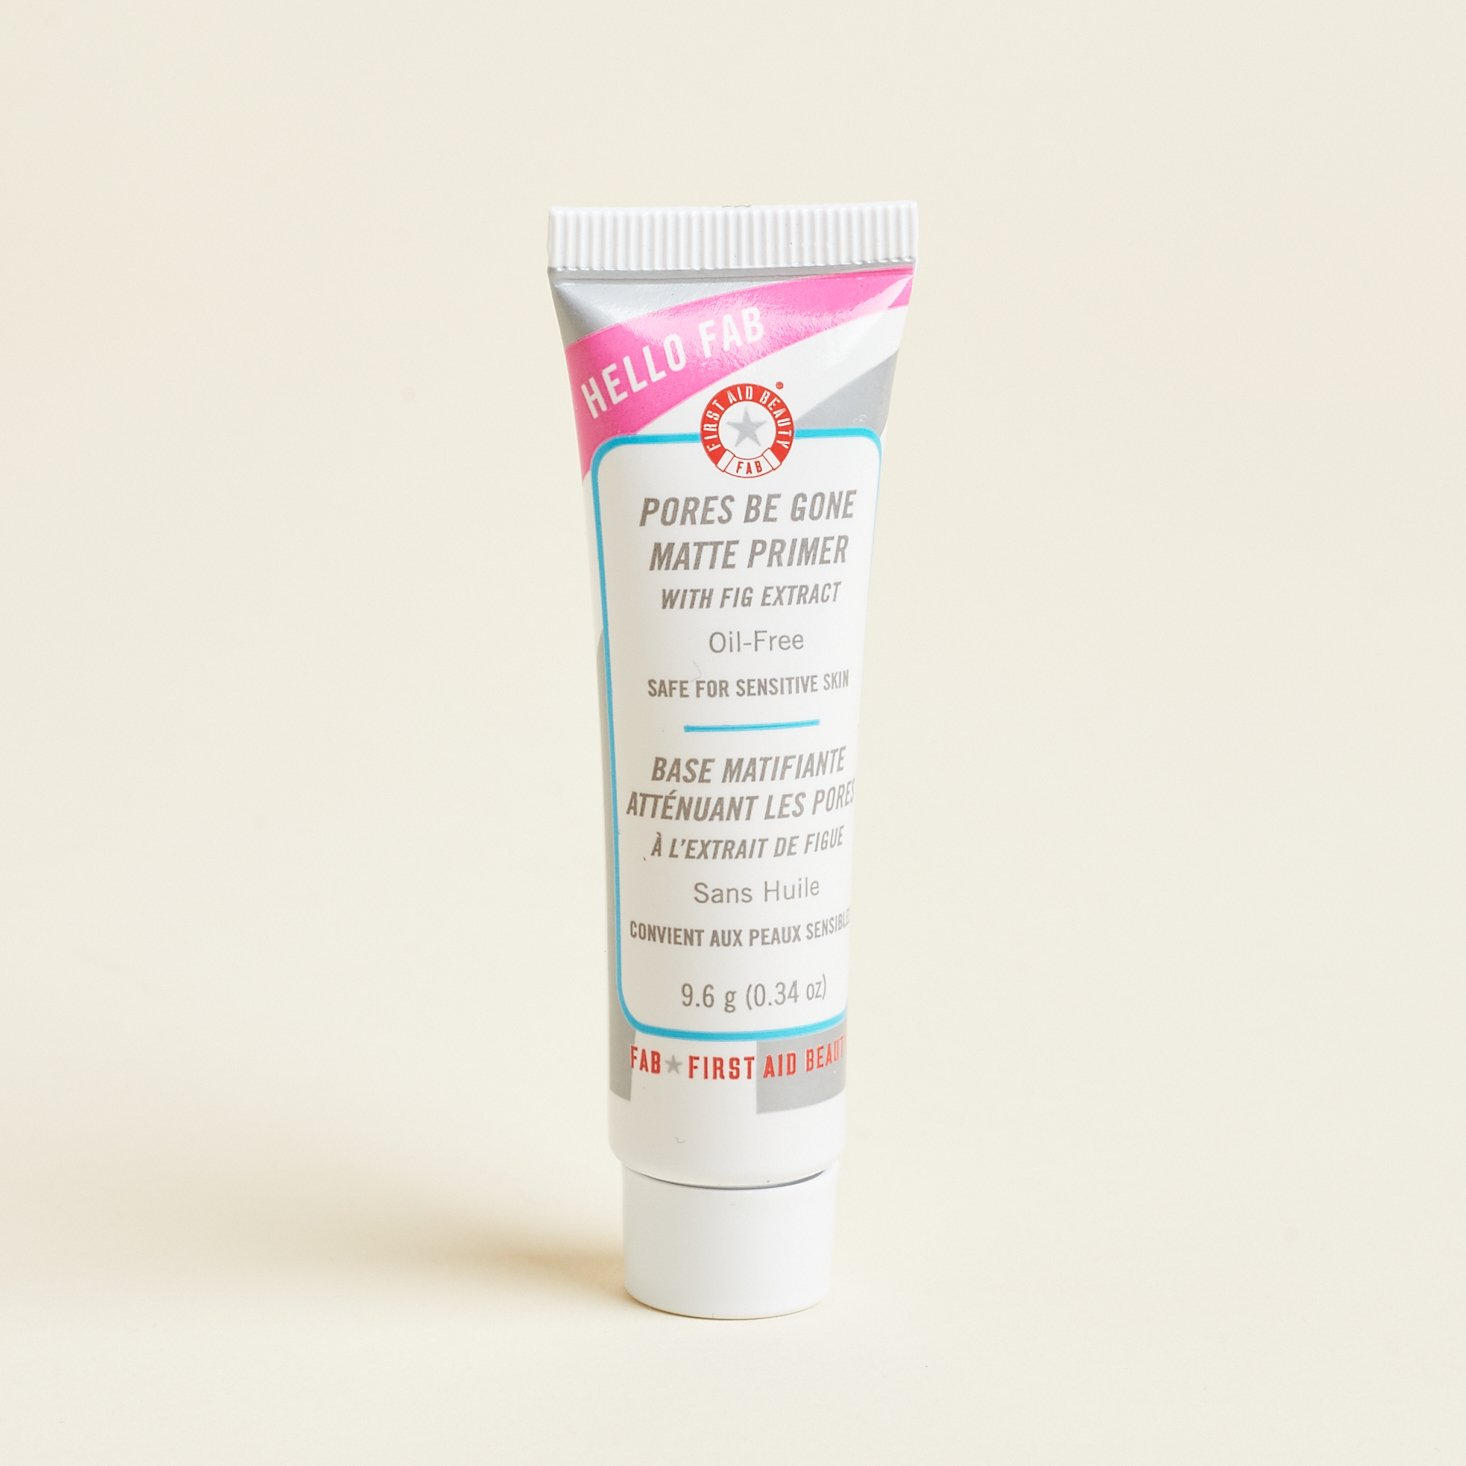 tube of primer with pink, red, blue, and silver design